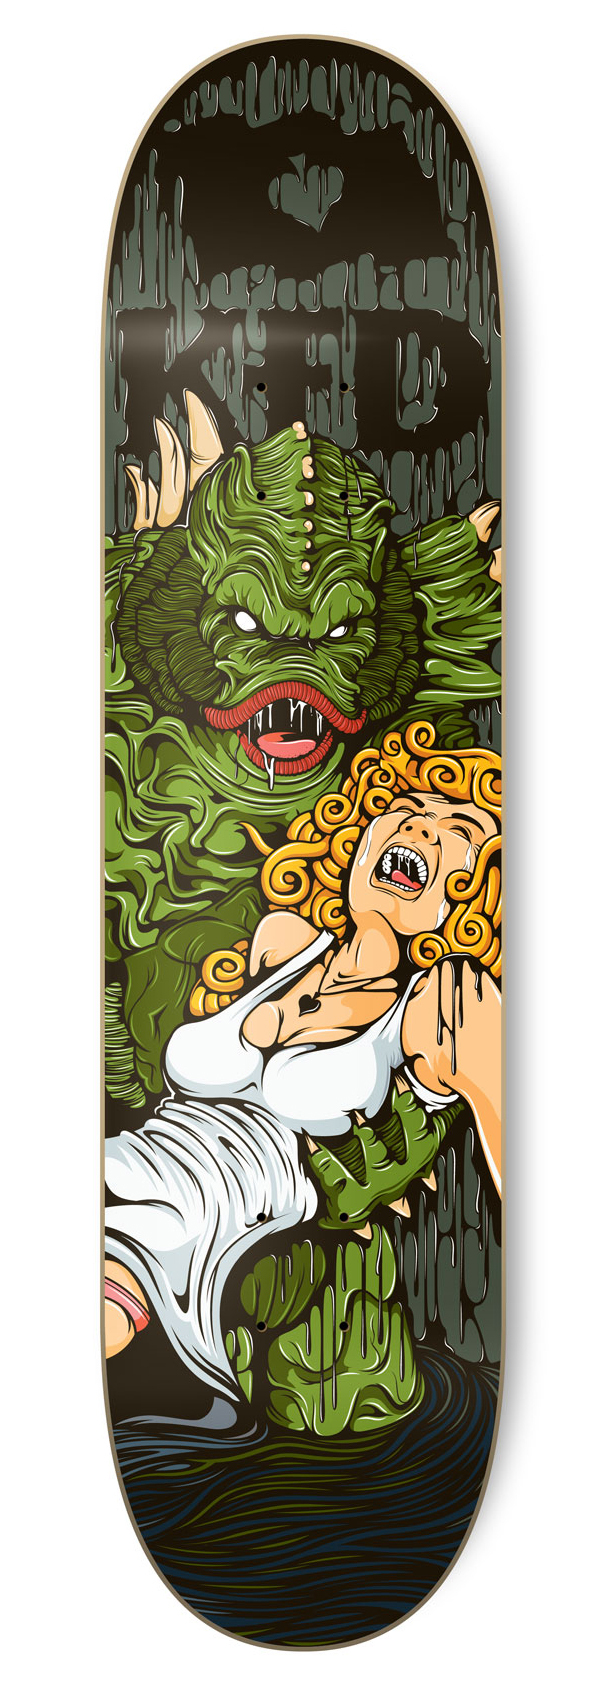 KFD Skate Deck by Greg Darroll